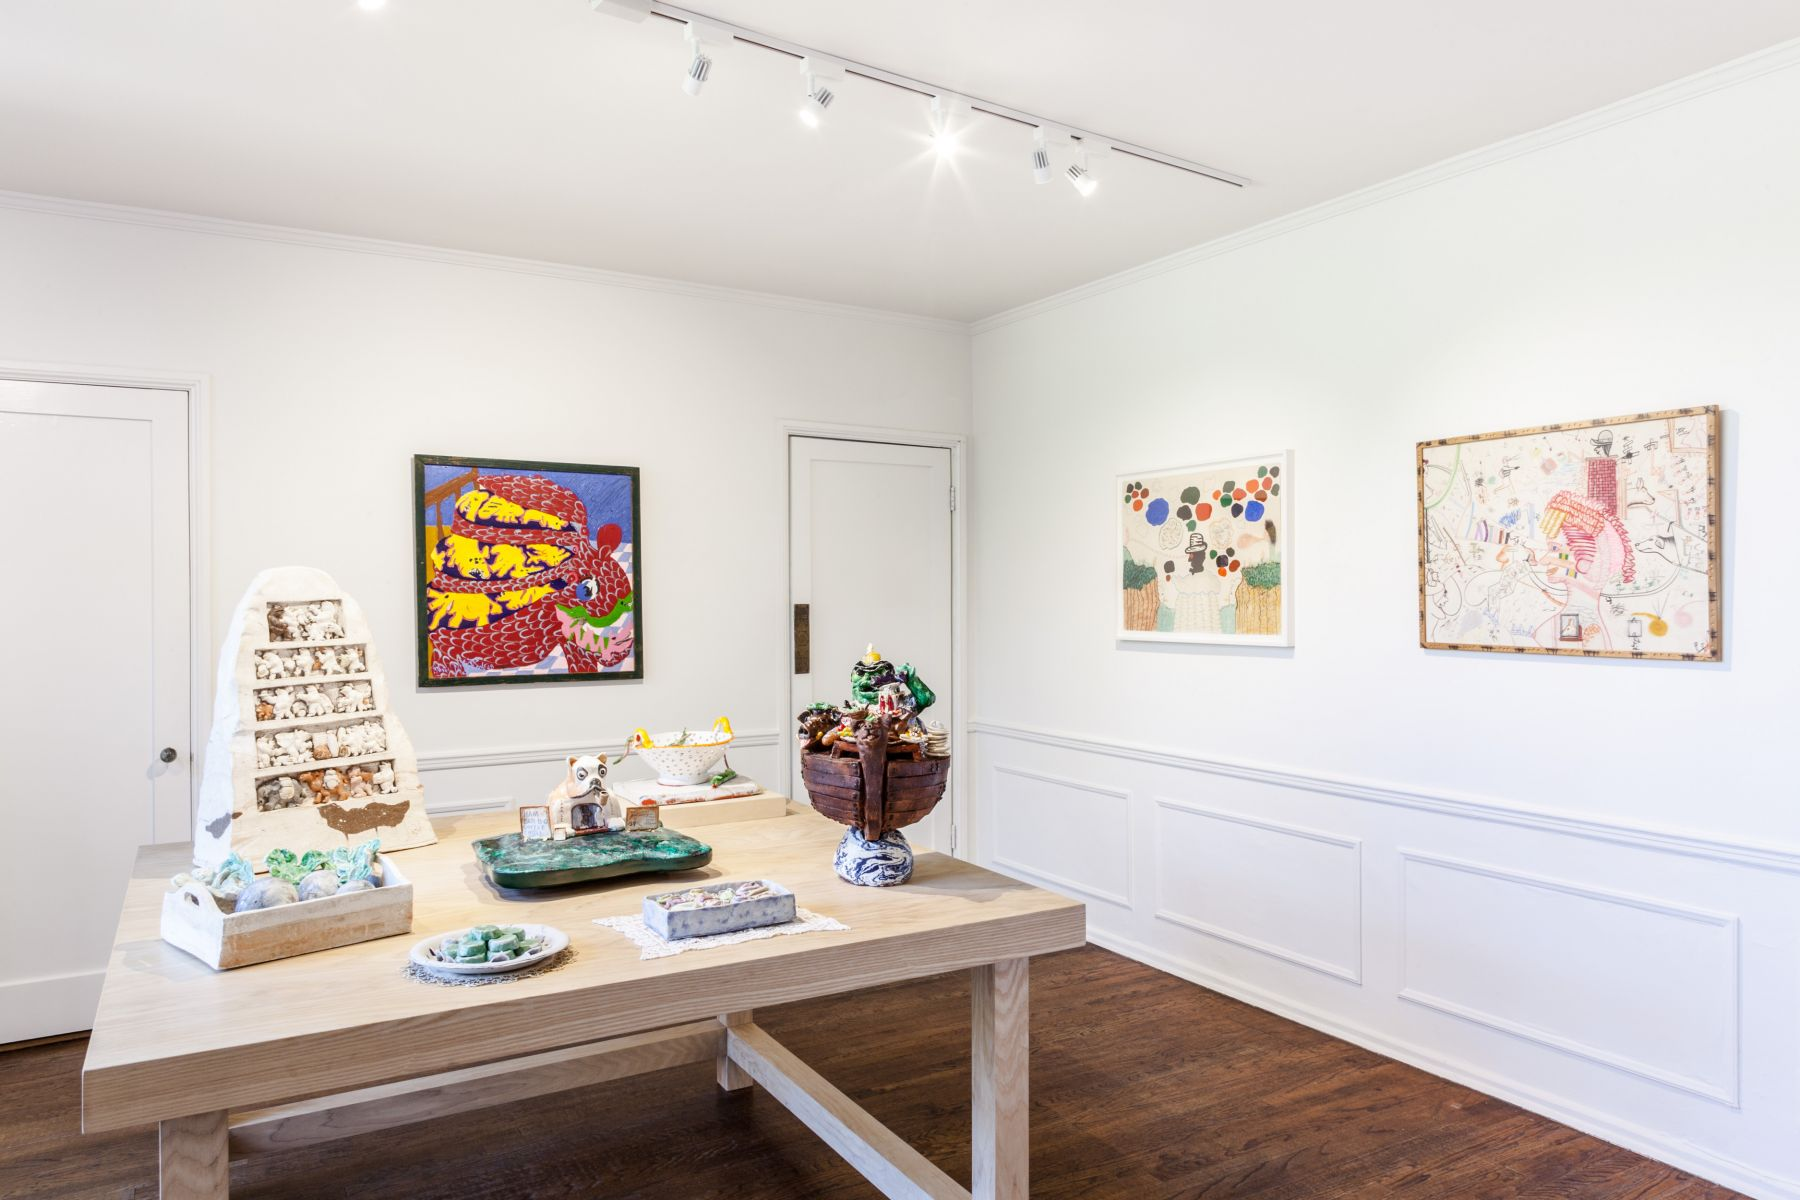 Exhibition view, The Candy Store, 2018. Courtesy of Parker Gallery, Los Angeles.